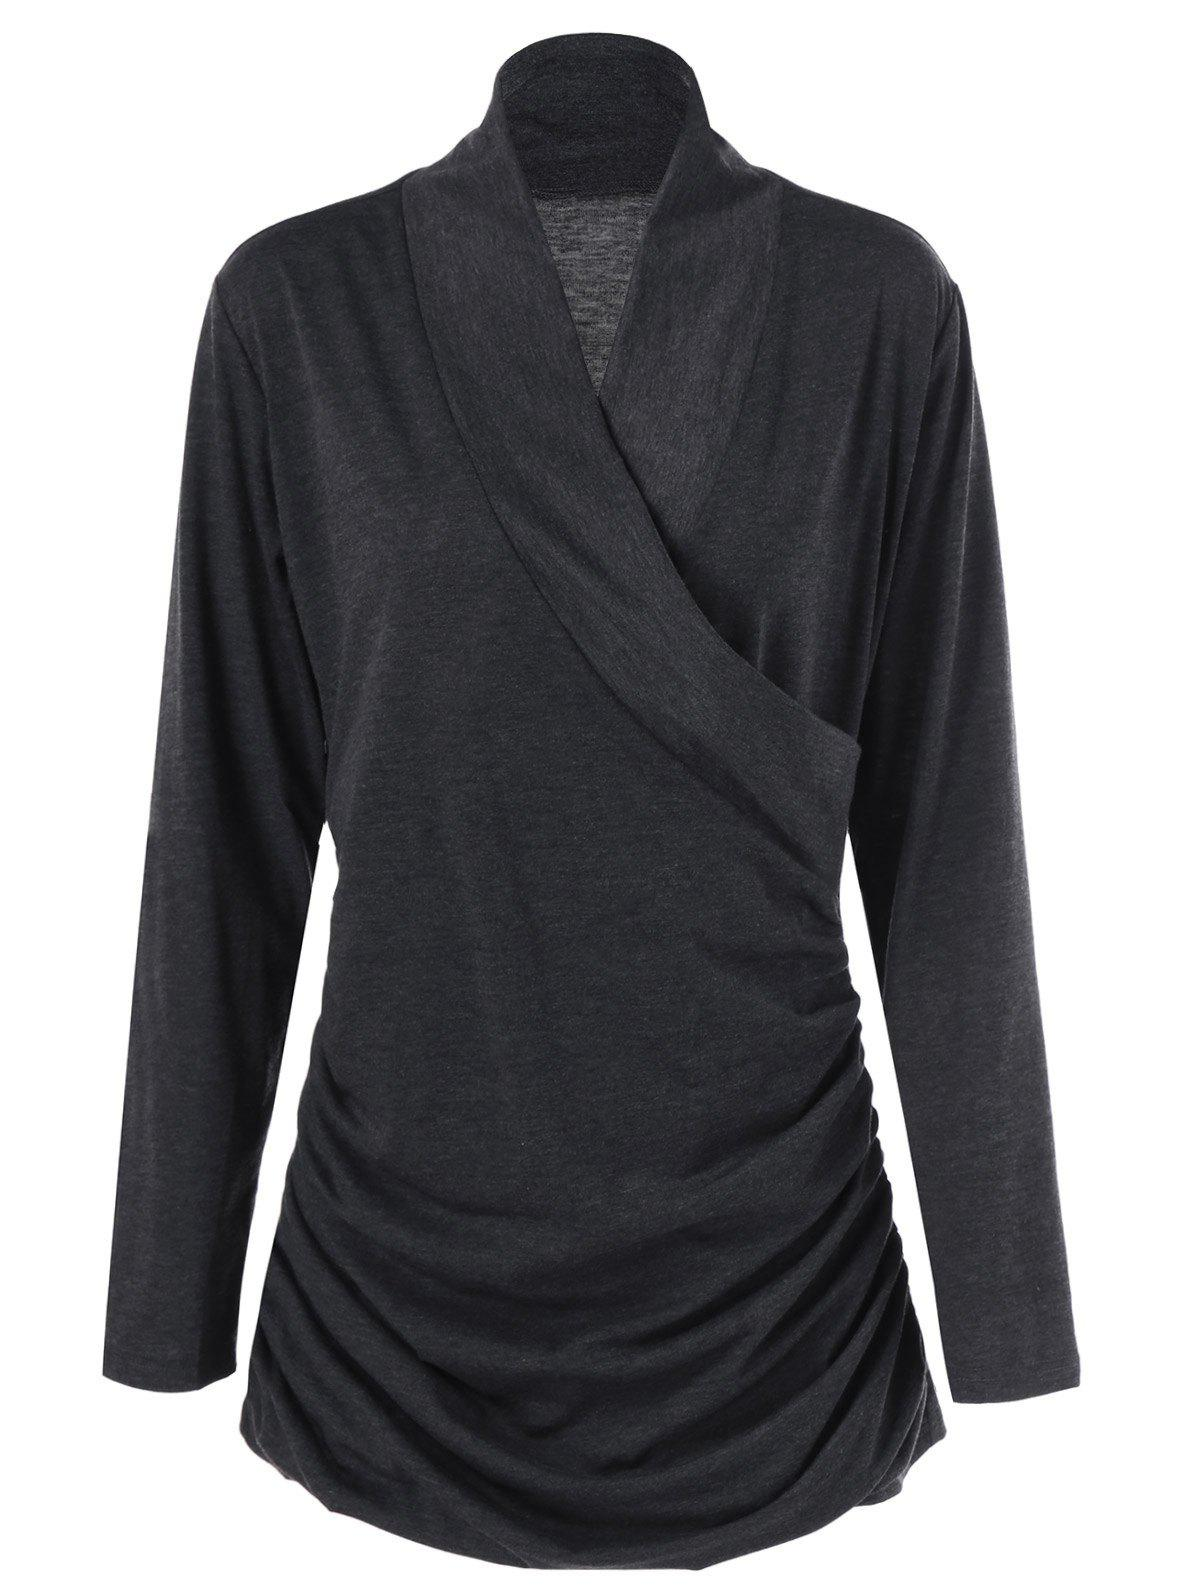 Ruched Surplice Plus Size T-Shirt - BLACK GREY XL